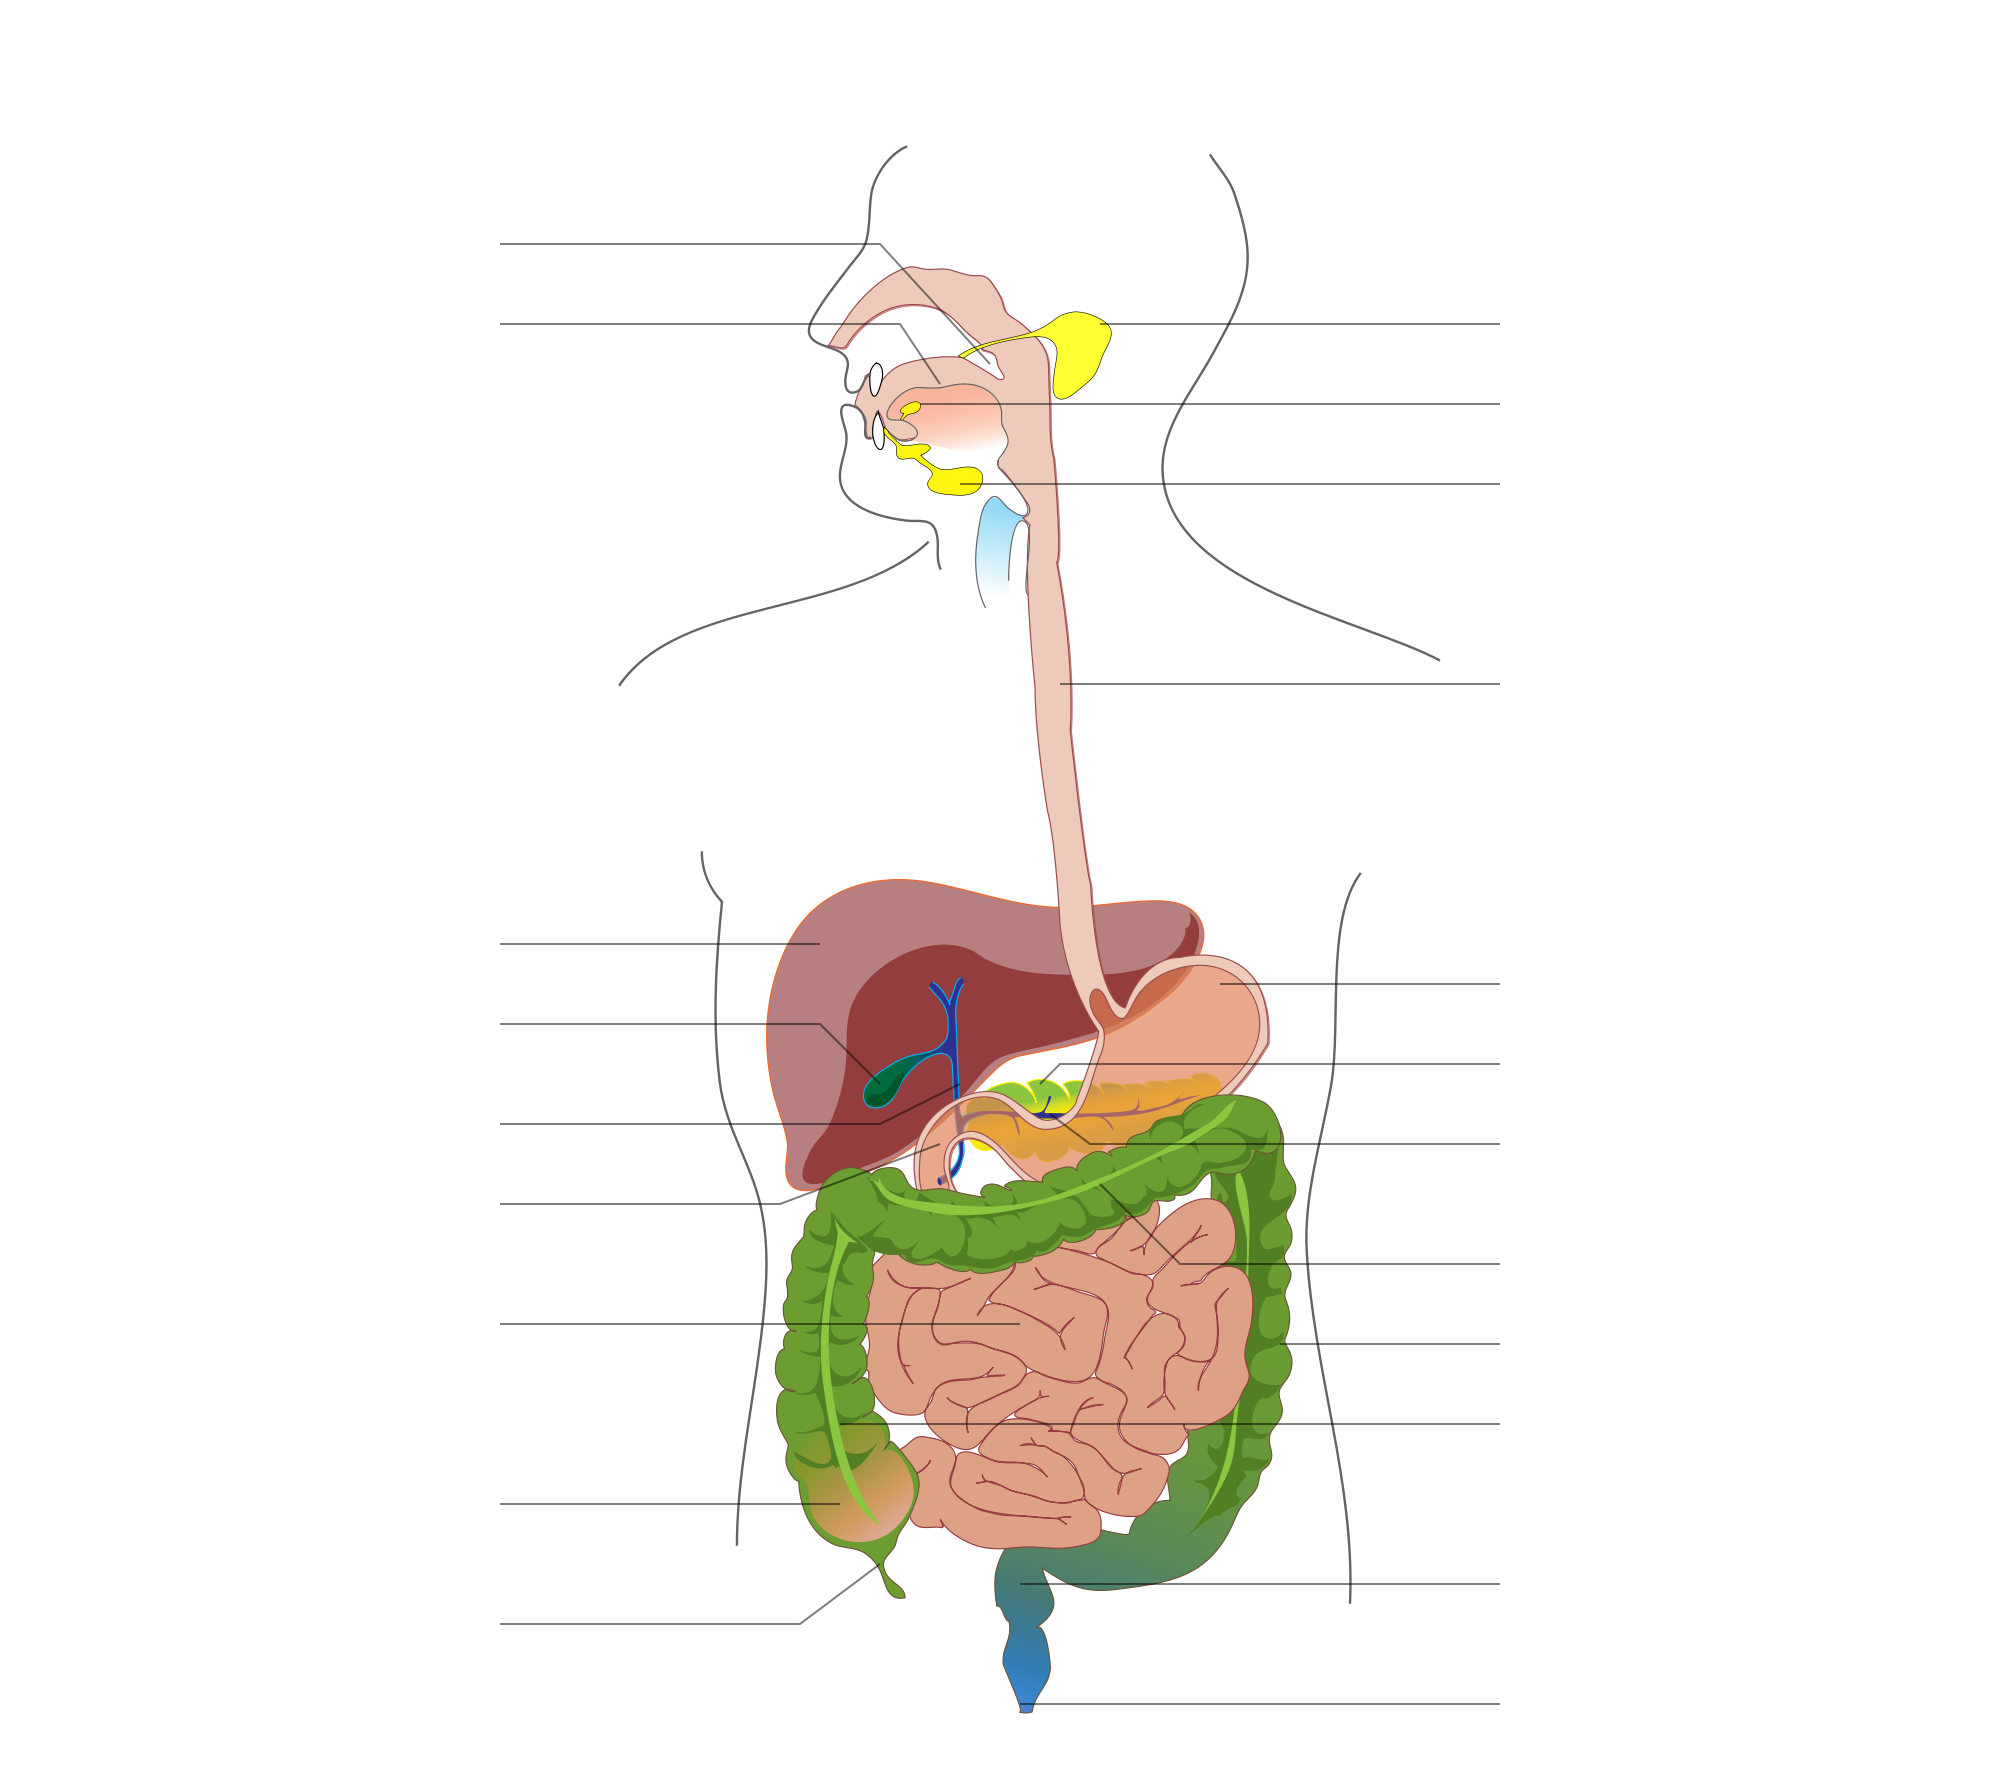 Gi drawing digestion. File digestive system diagram